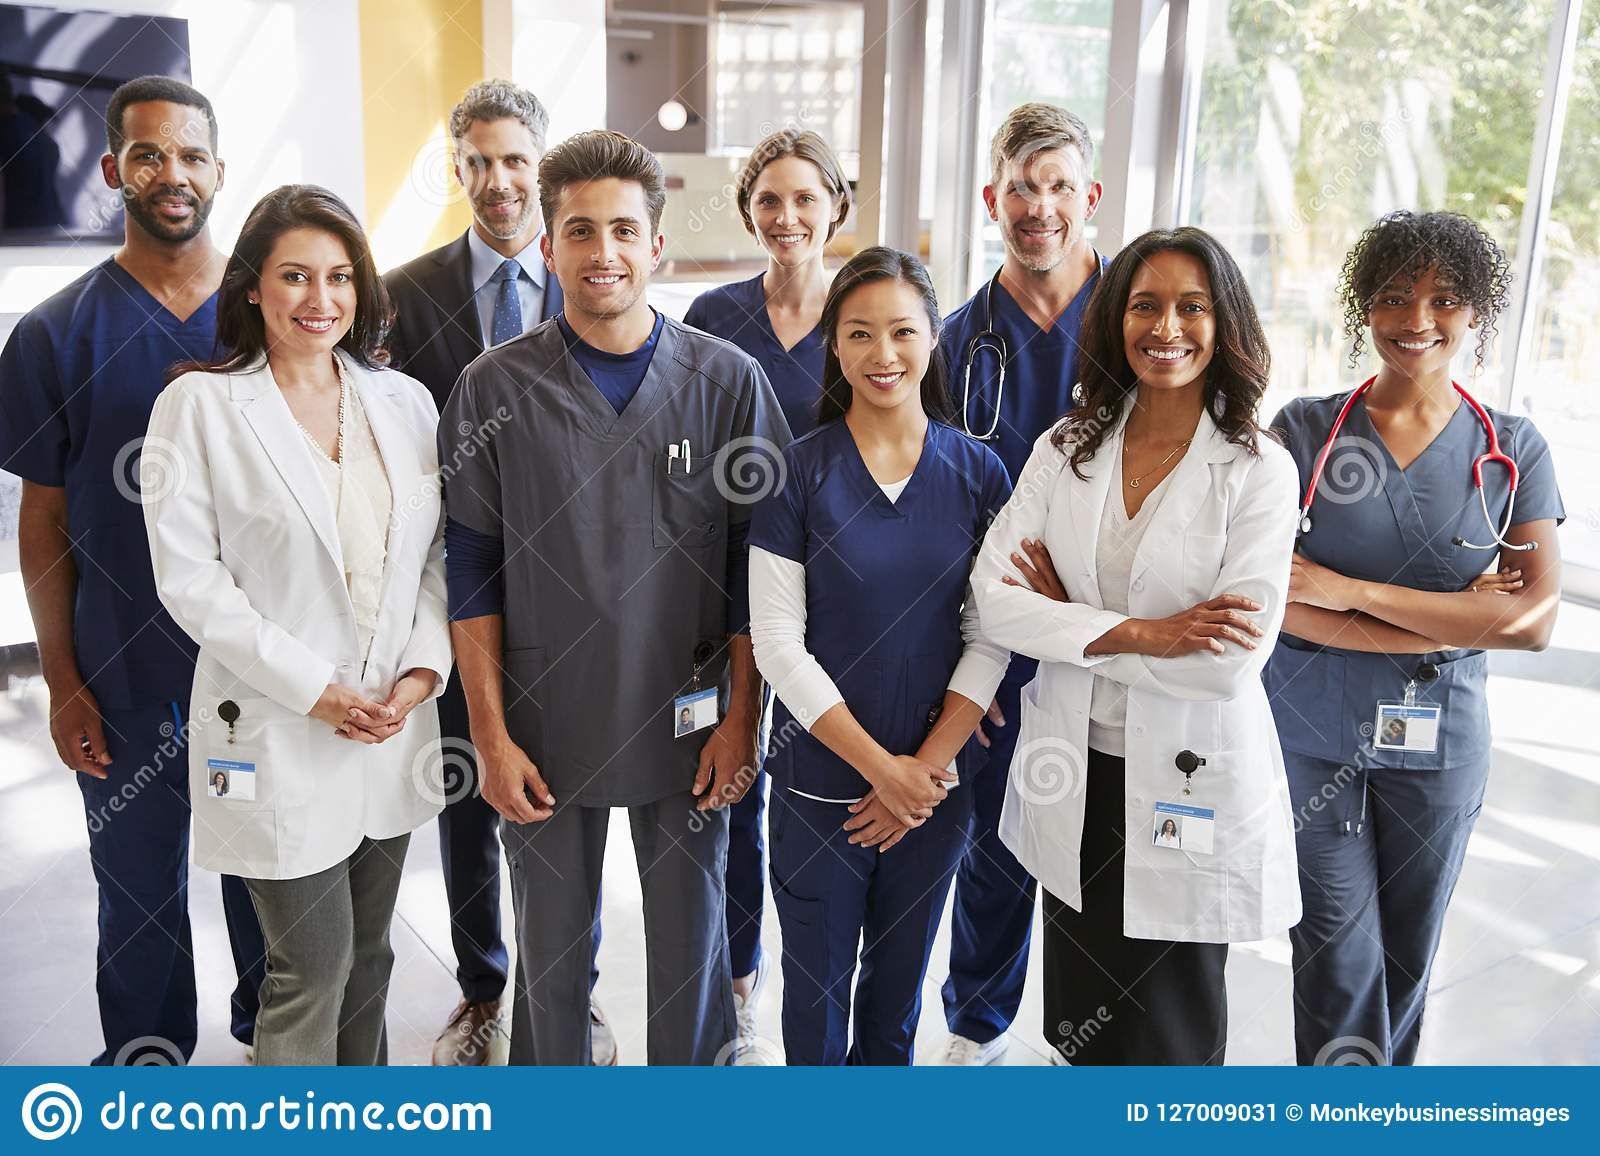 Team Of Healthcare Workers At A Hospital Smiling To Camera